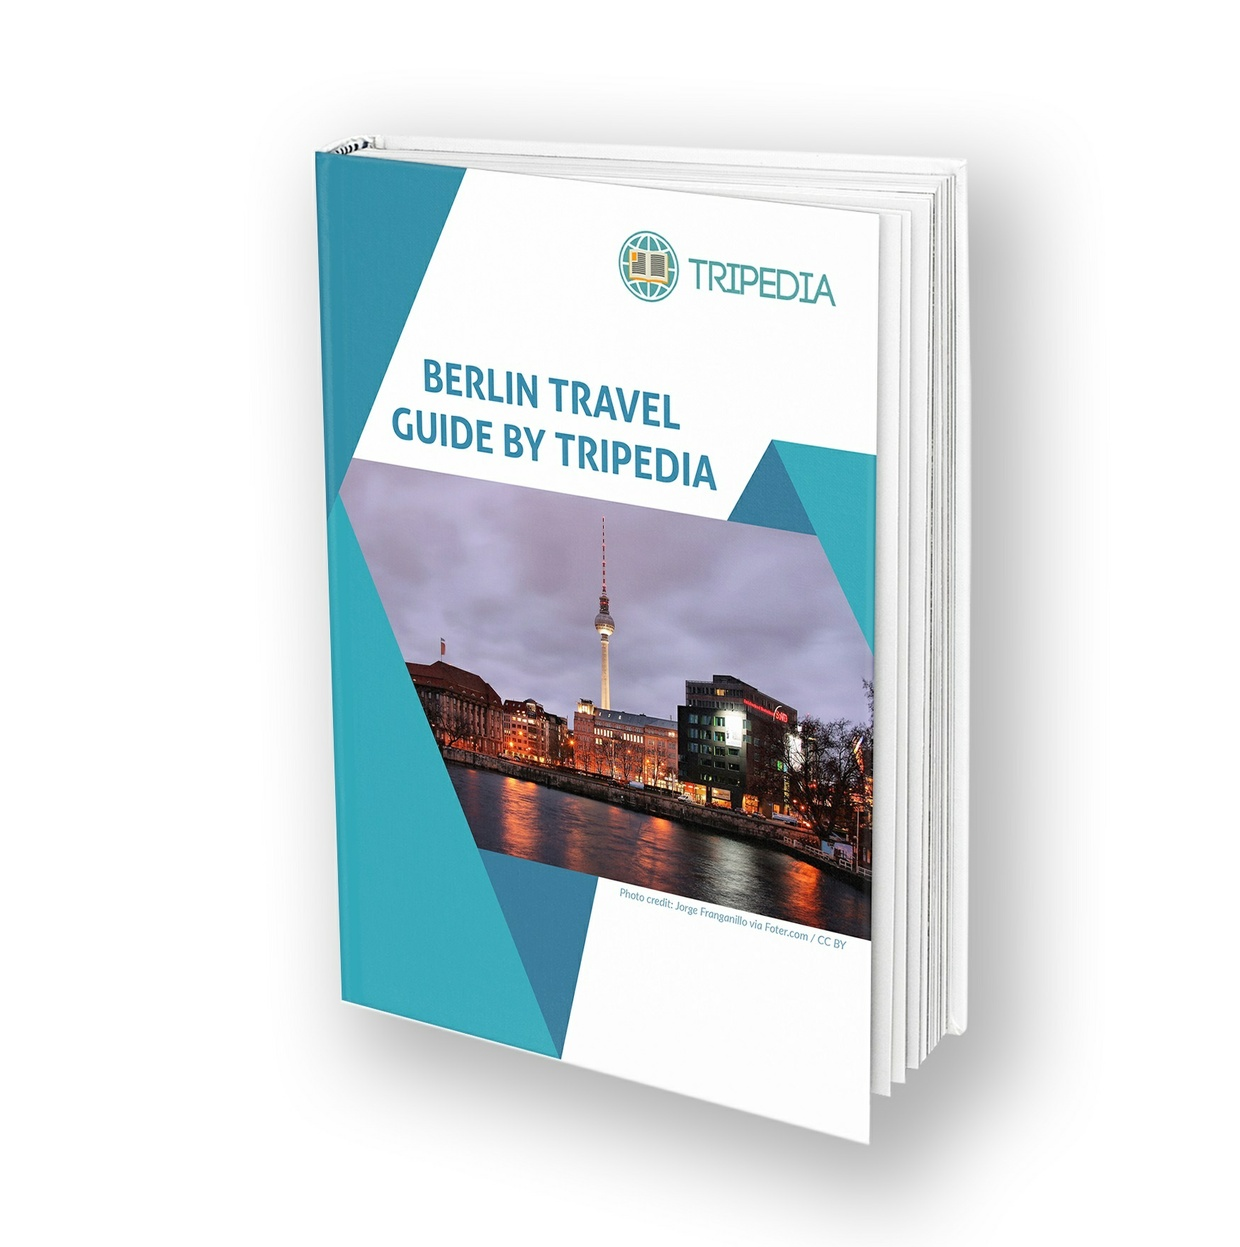 Berlin travel guide by Tripedia